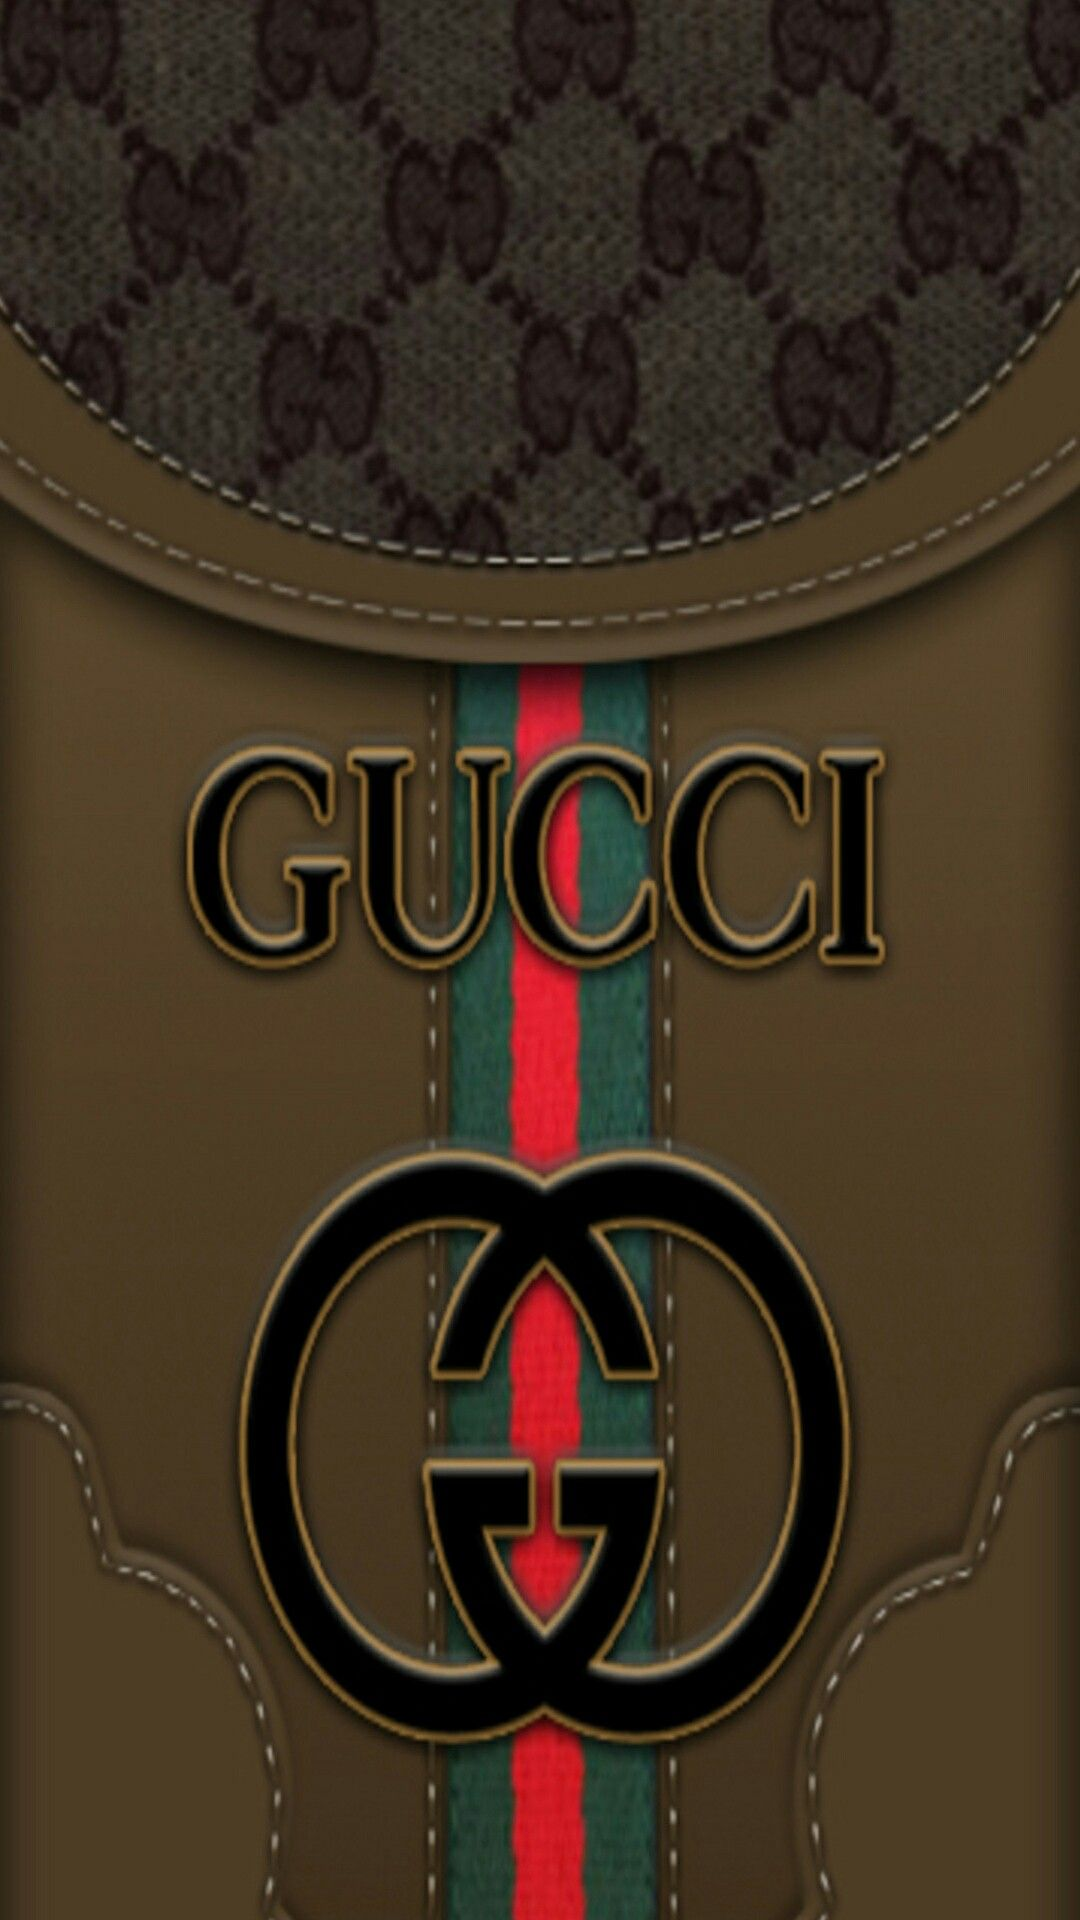 Pin By Samantha Keller On Gucci In 2019 Iphone Wallpaper Iphone